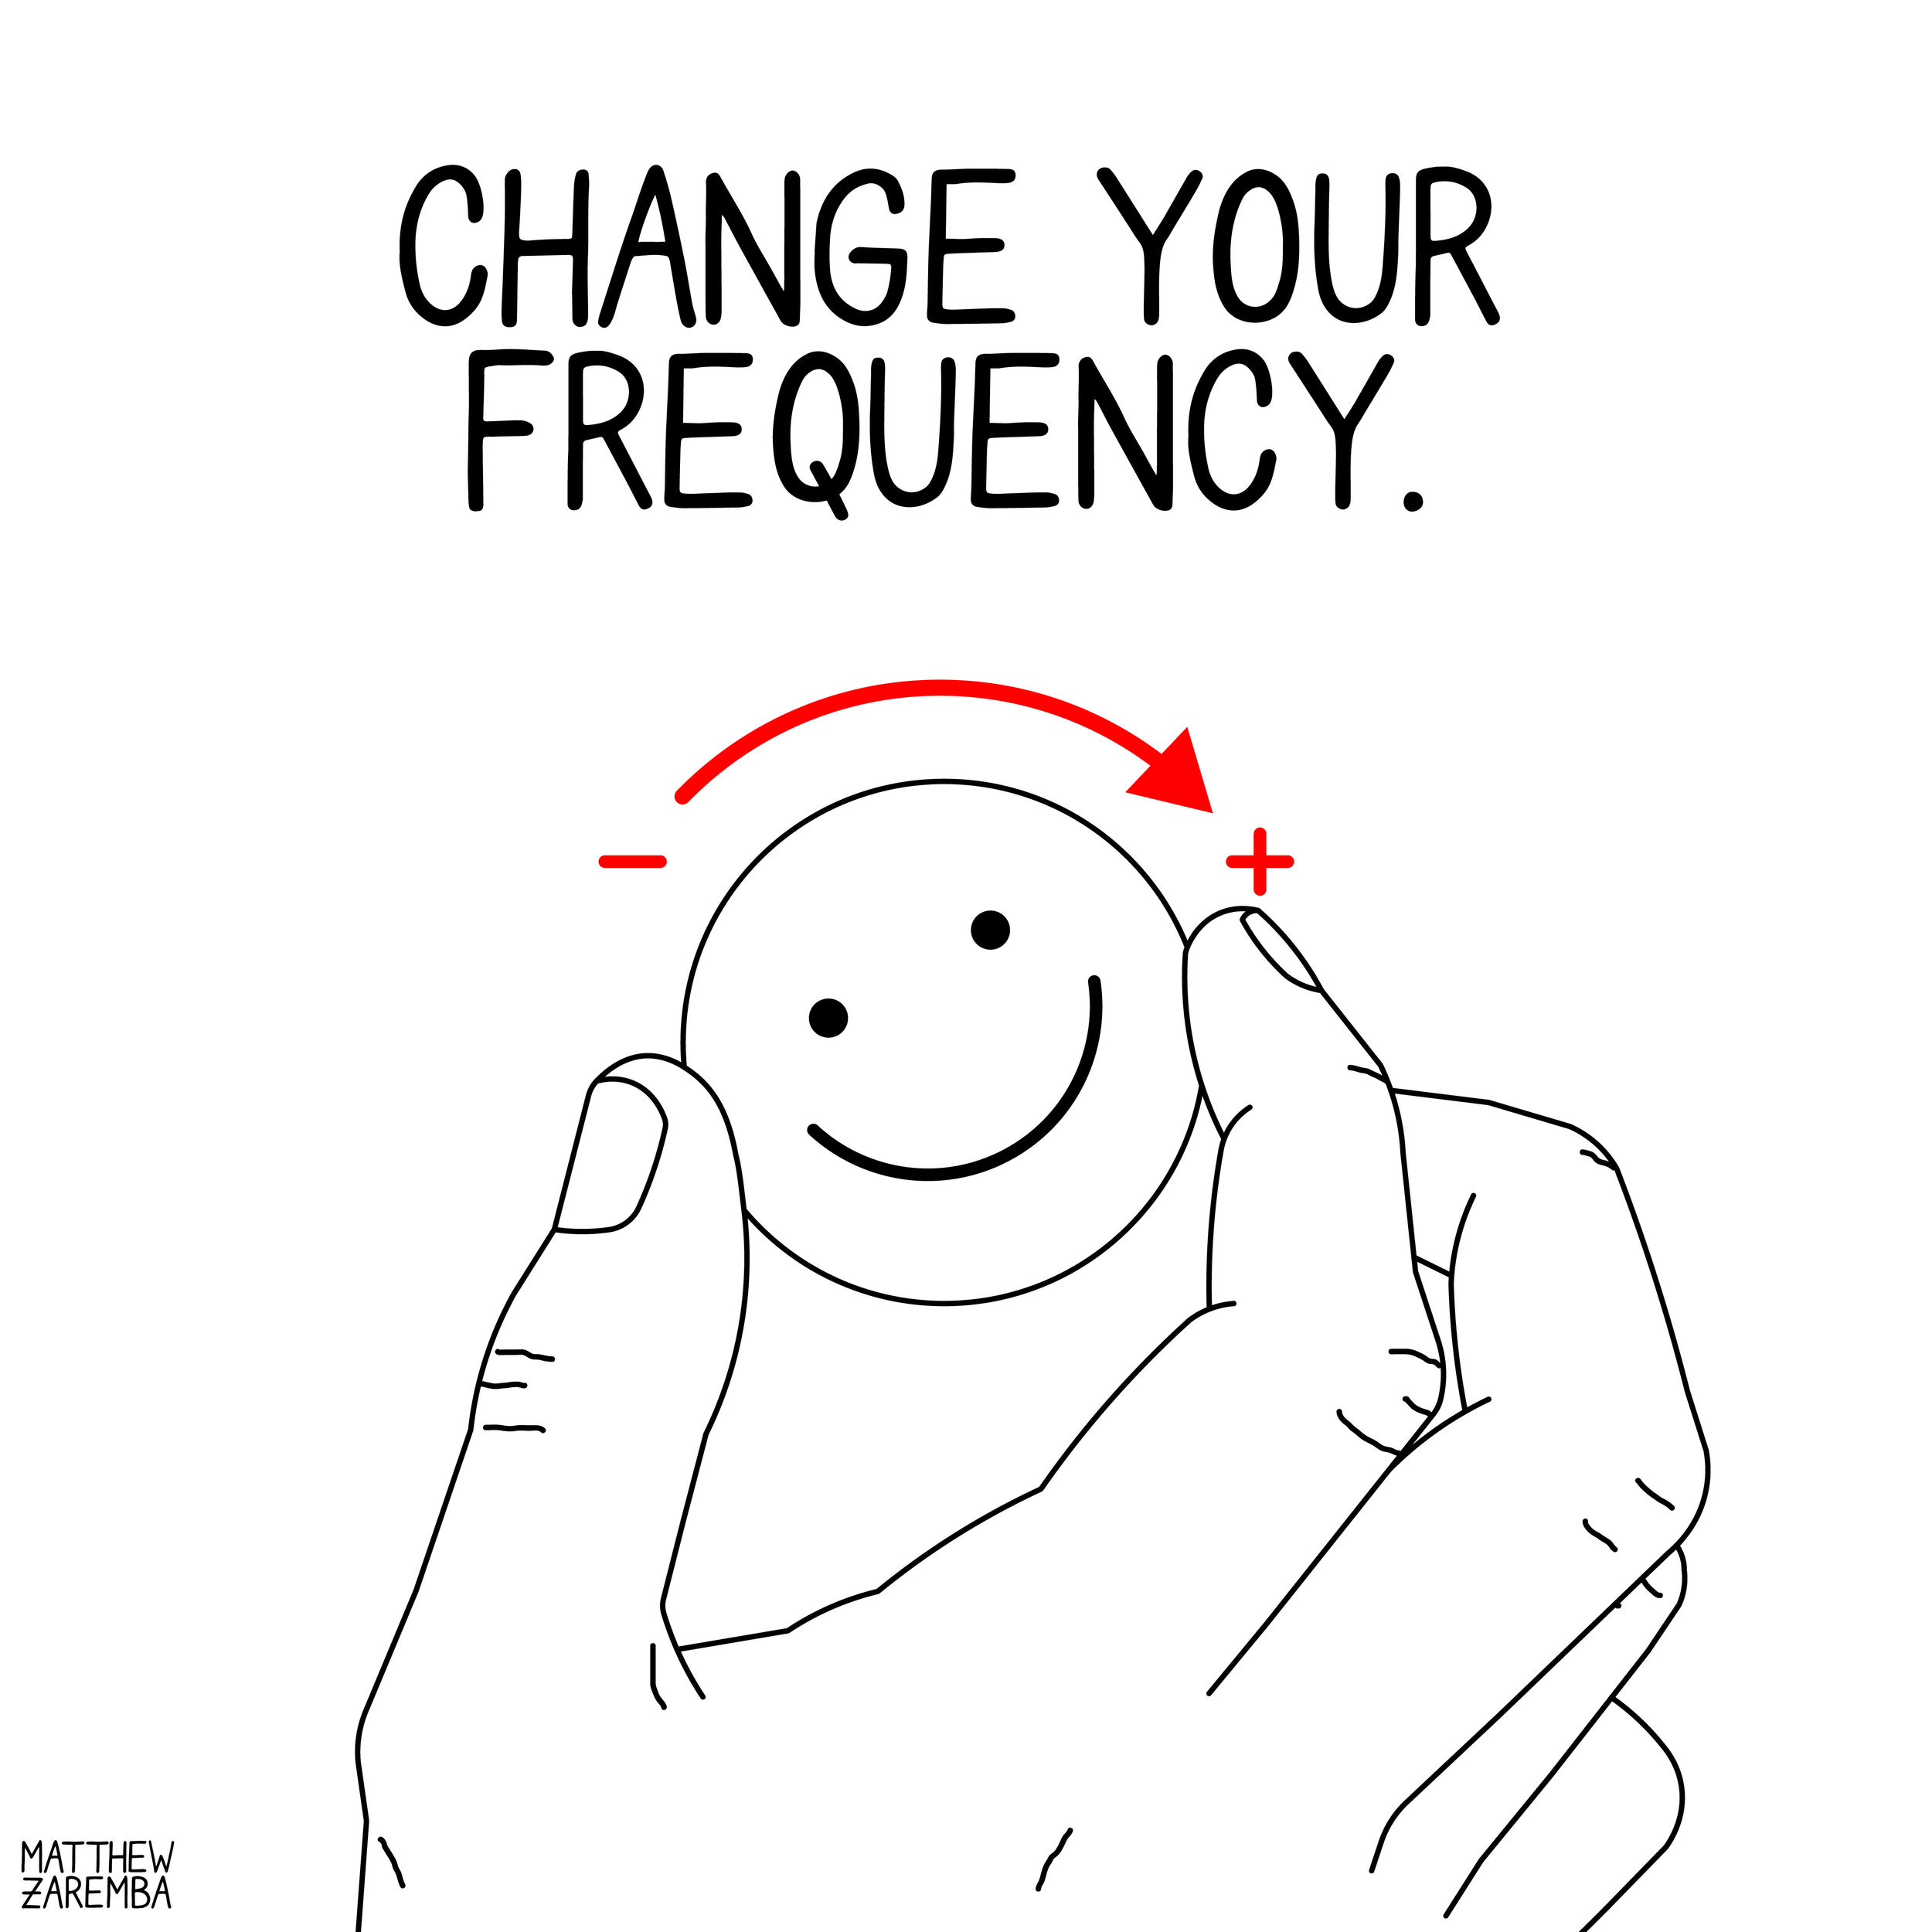 changeyourfrequency-01.jpg